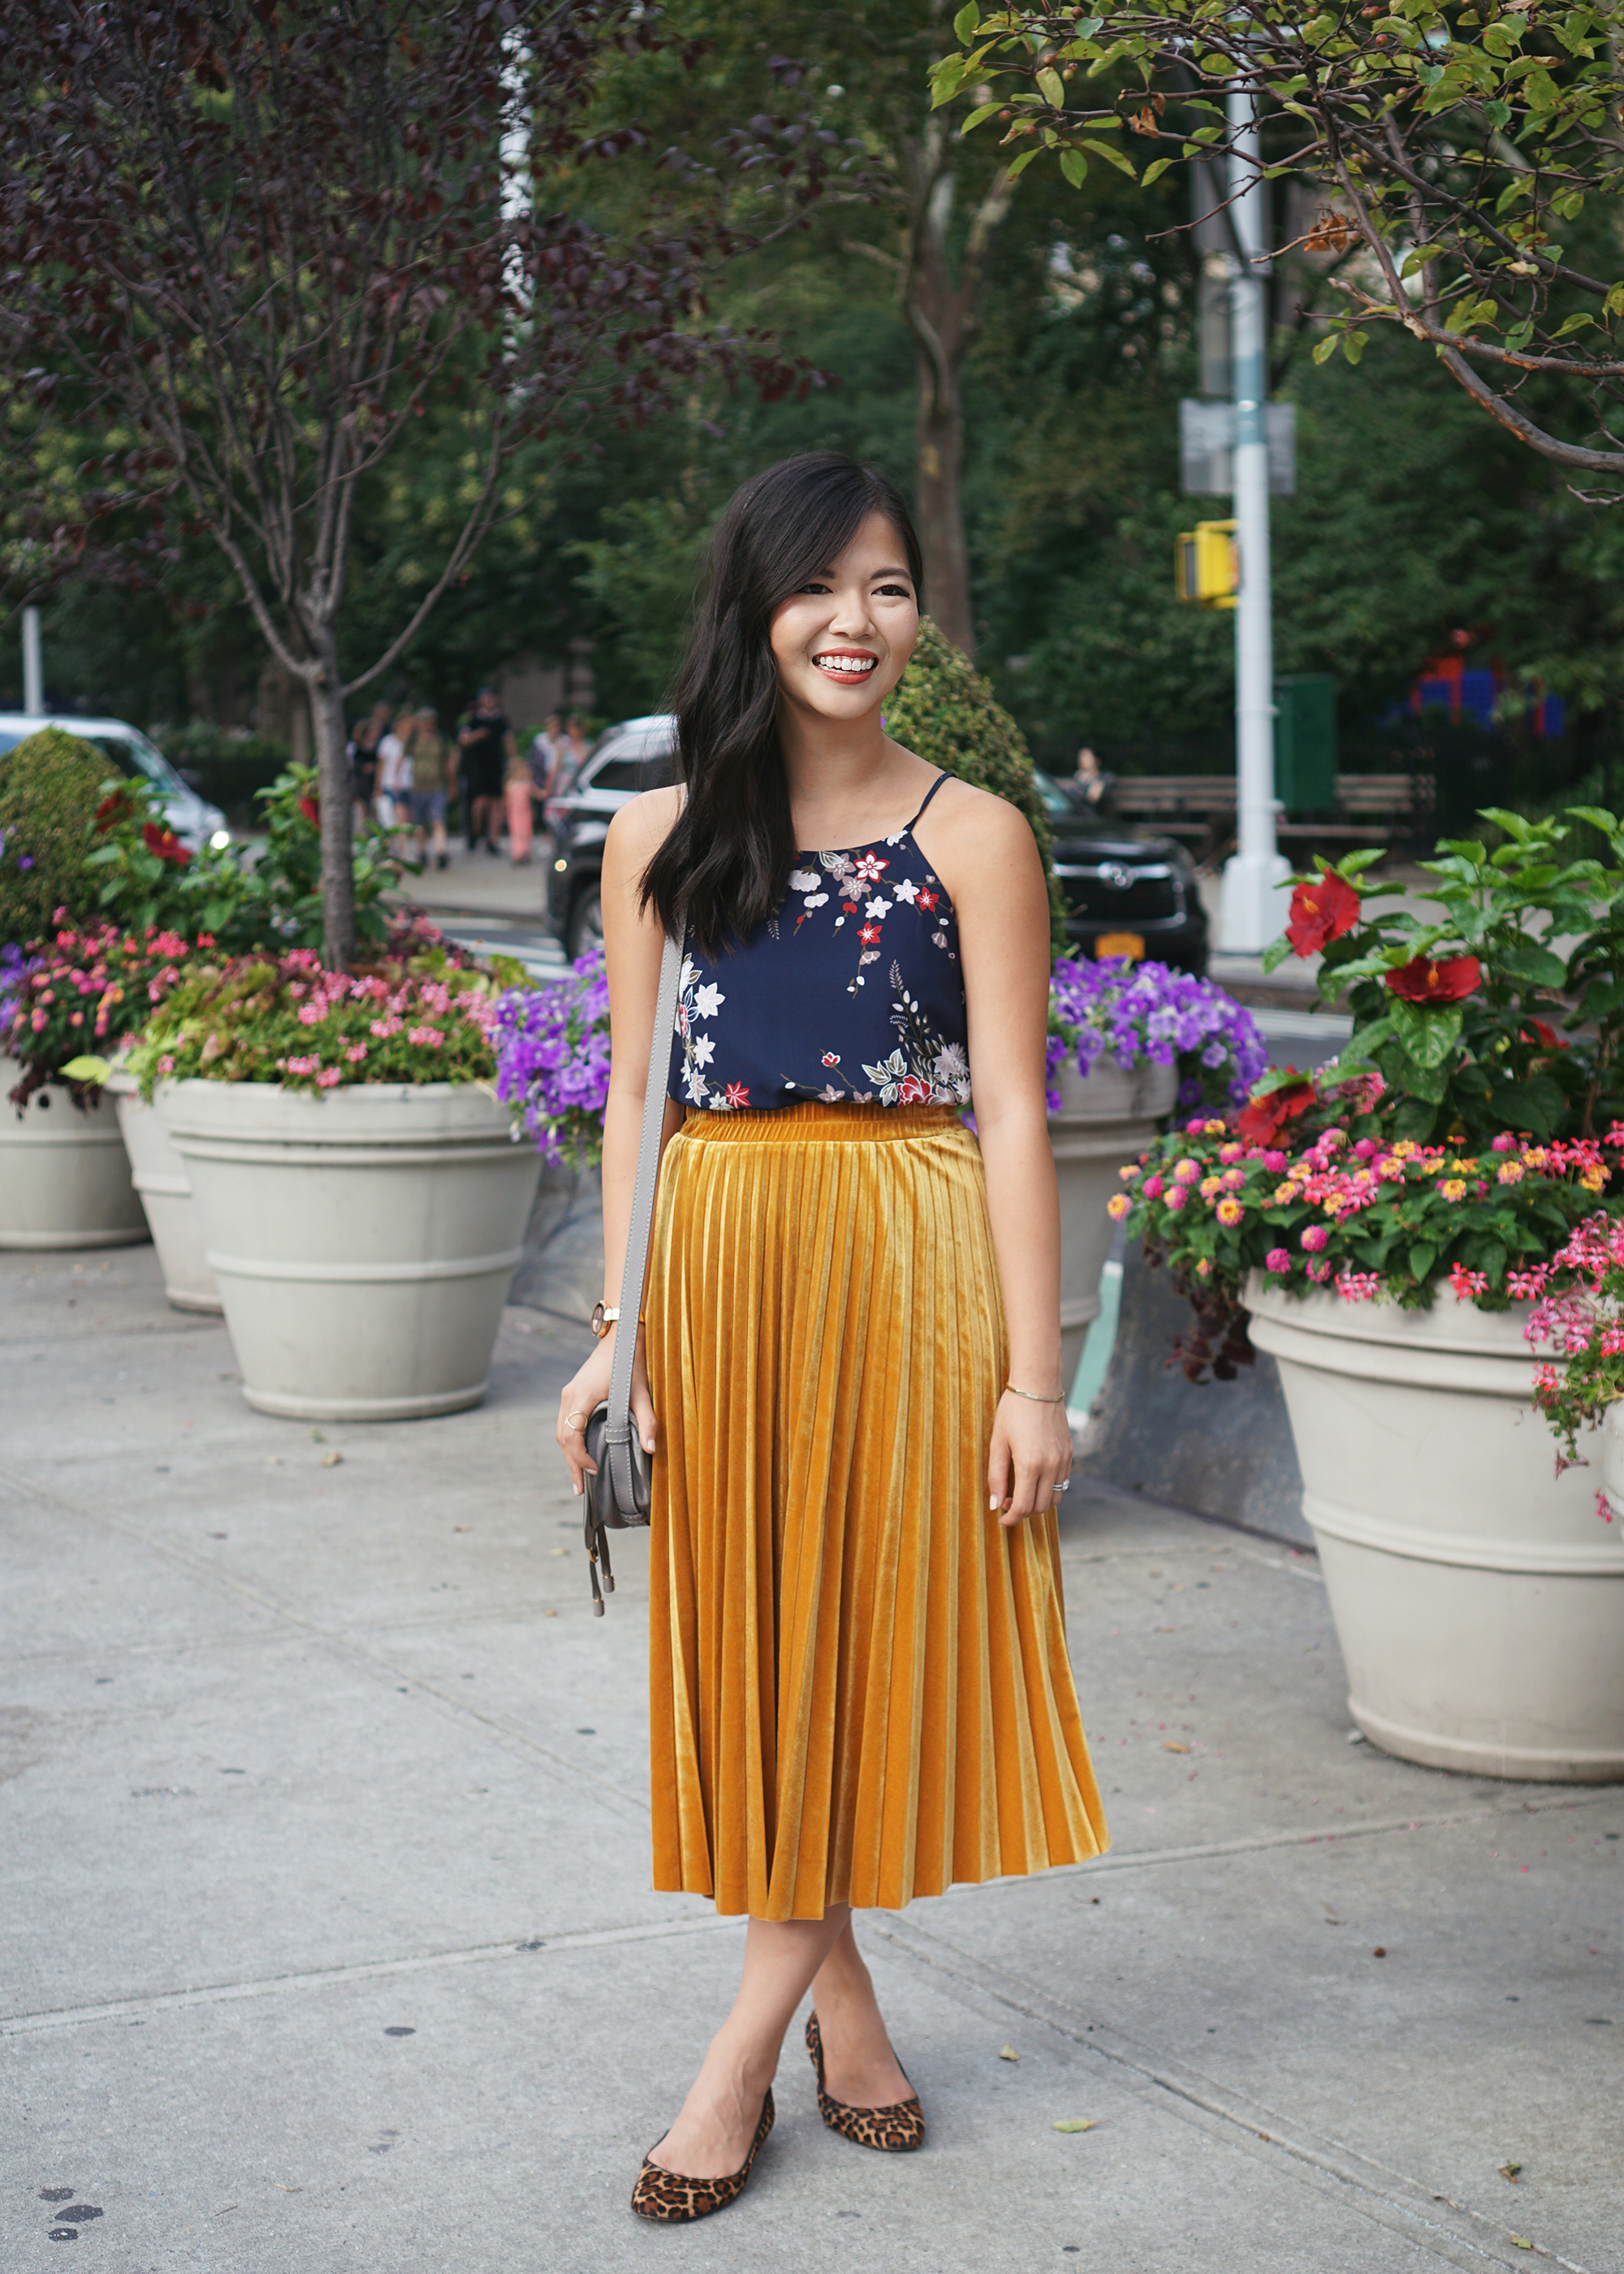 Fall Outfit Inspiration: Navy Floral Top & Mustard Velvet Skirt